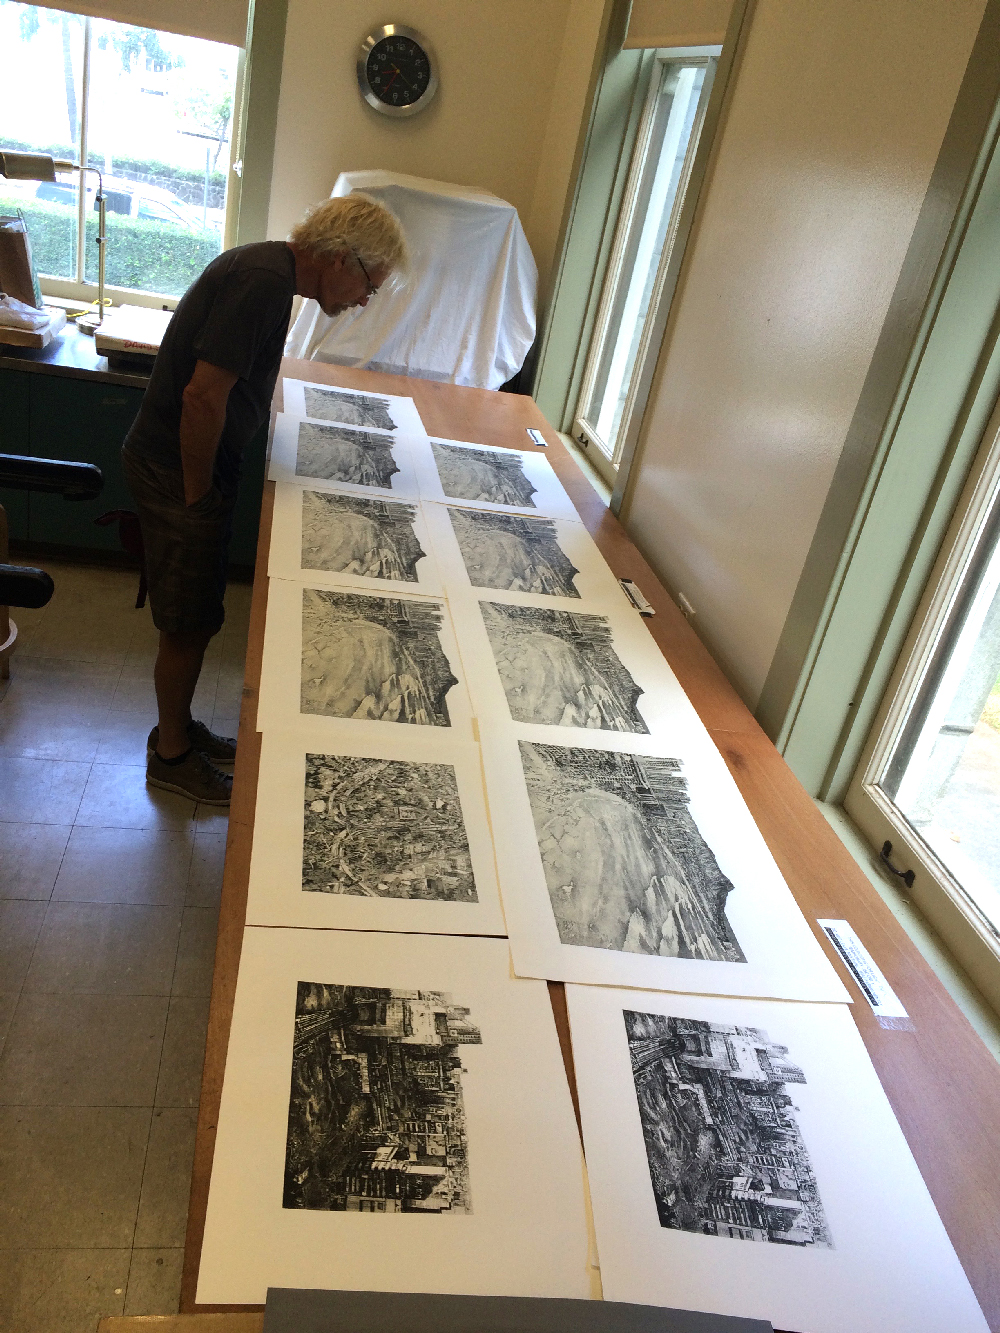 Some of Motoda Hisaharu's prints laid out for the public. (Image by Stephen Salel, assistant curator of Japanese Art at Honolulu Museum)